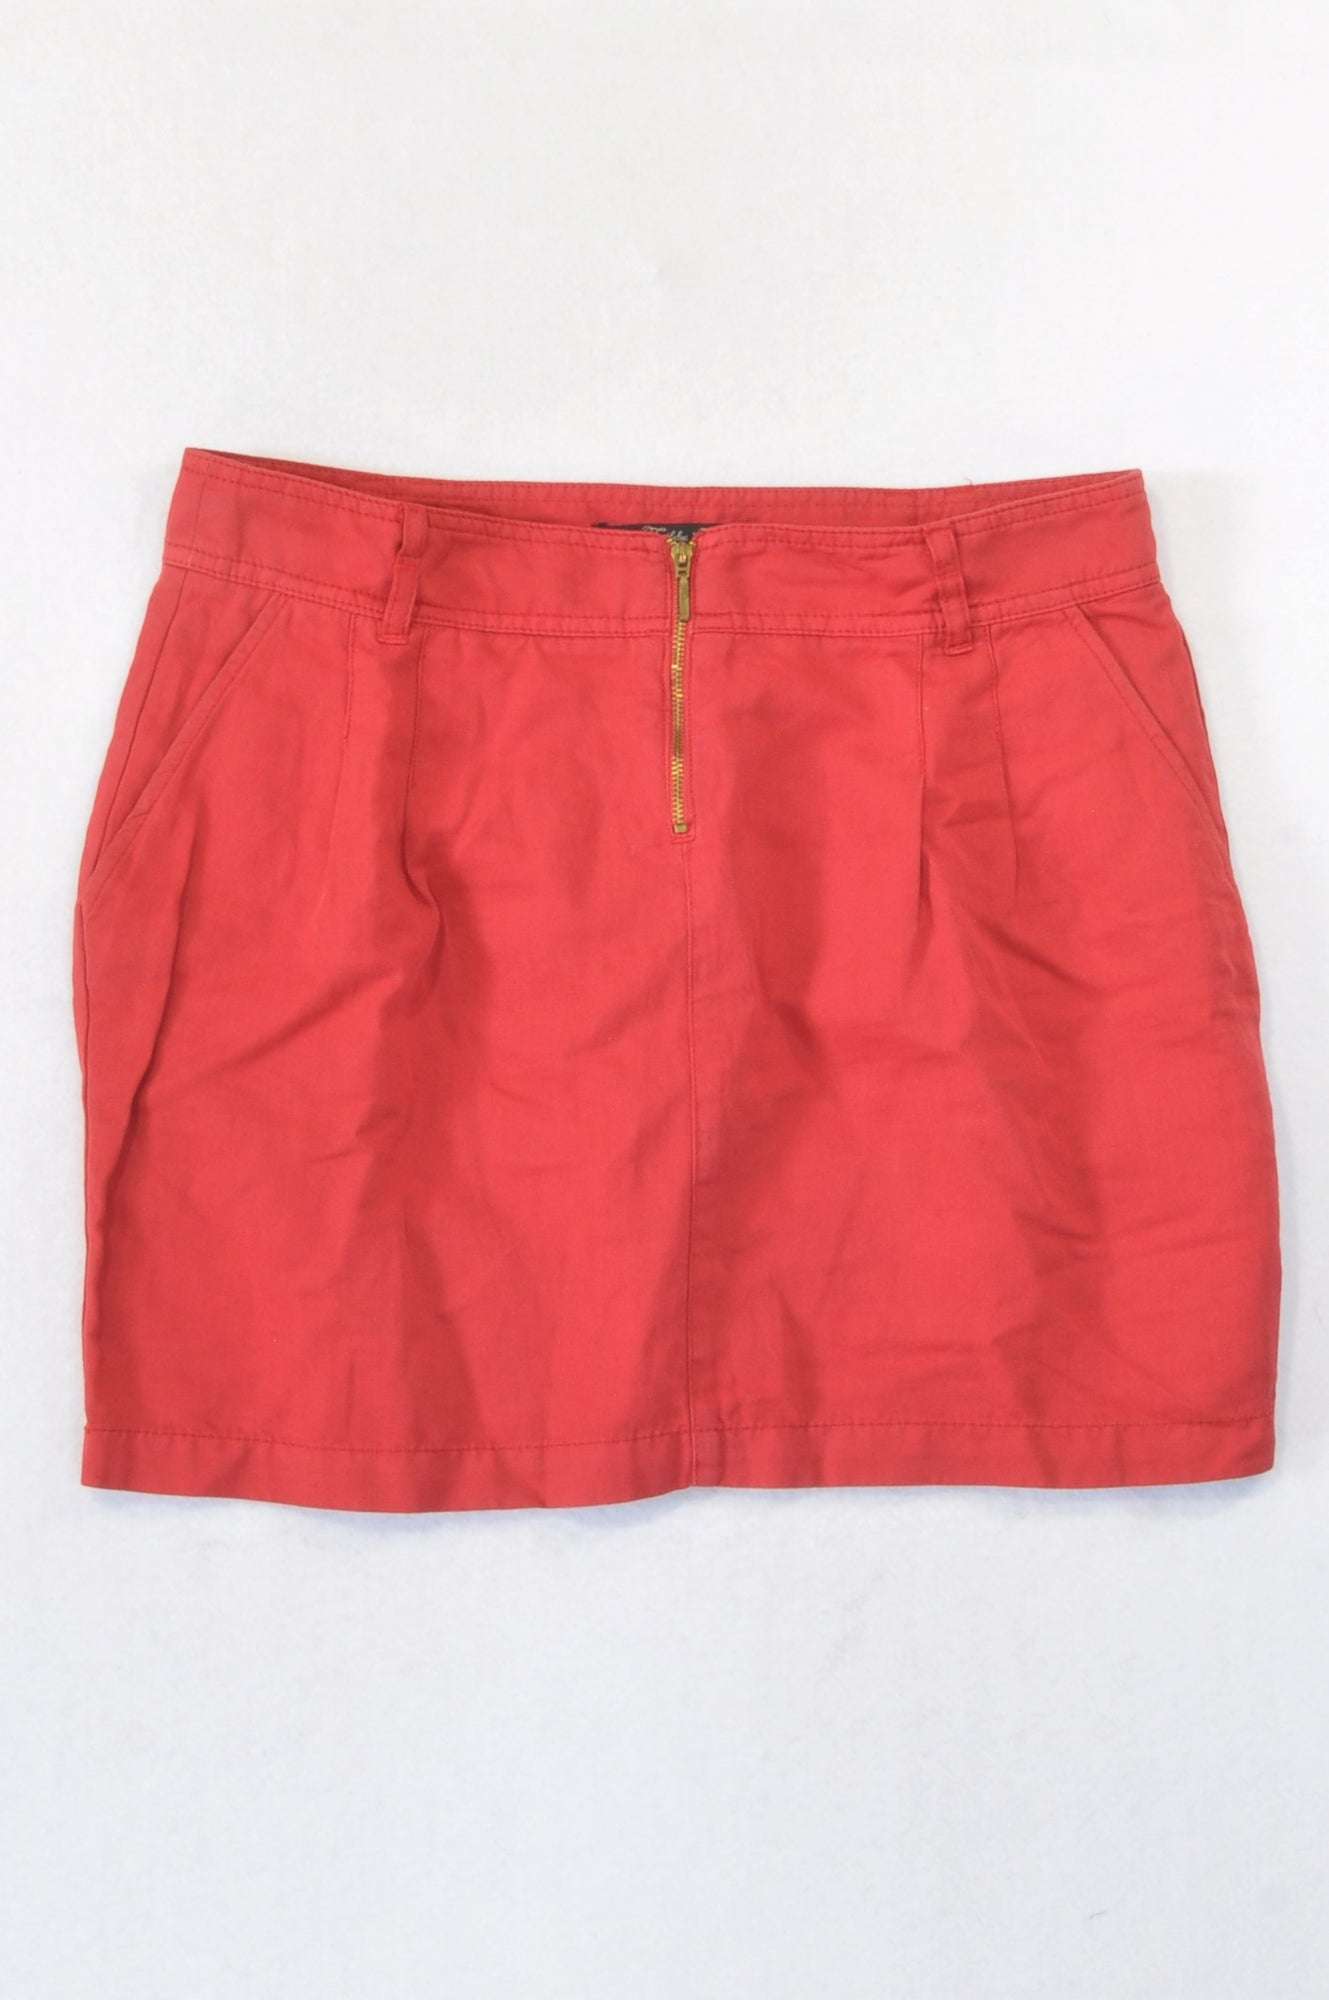 Zara Red Denim Zipper Skirt Women Size 12